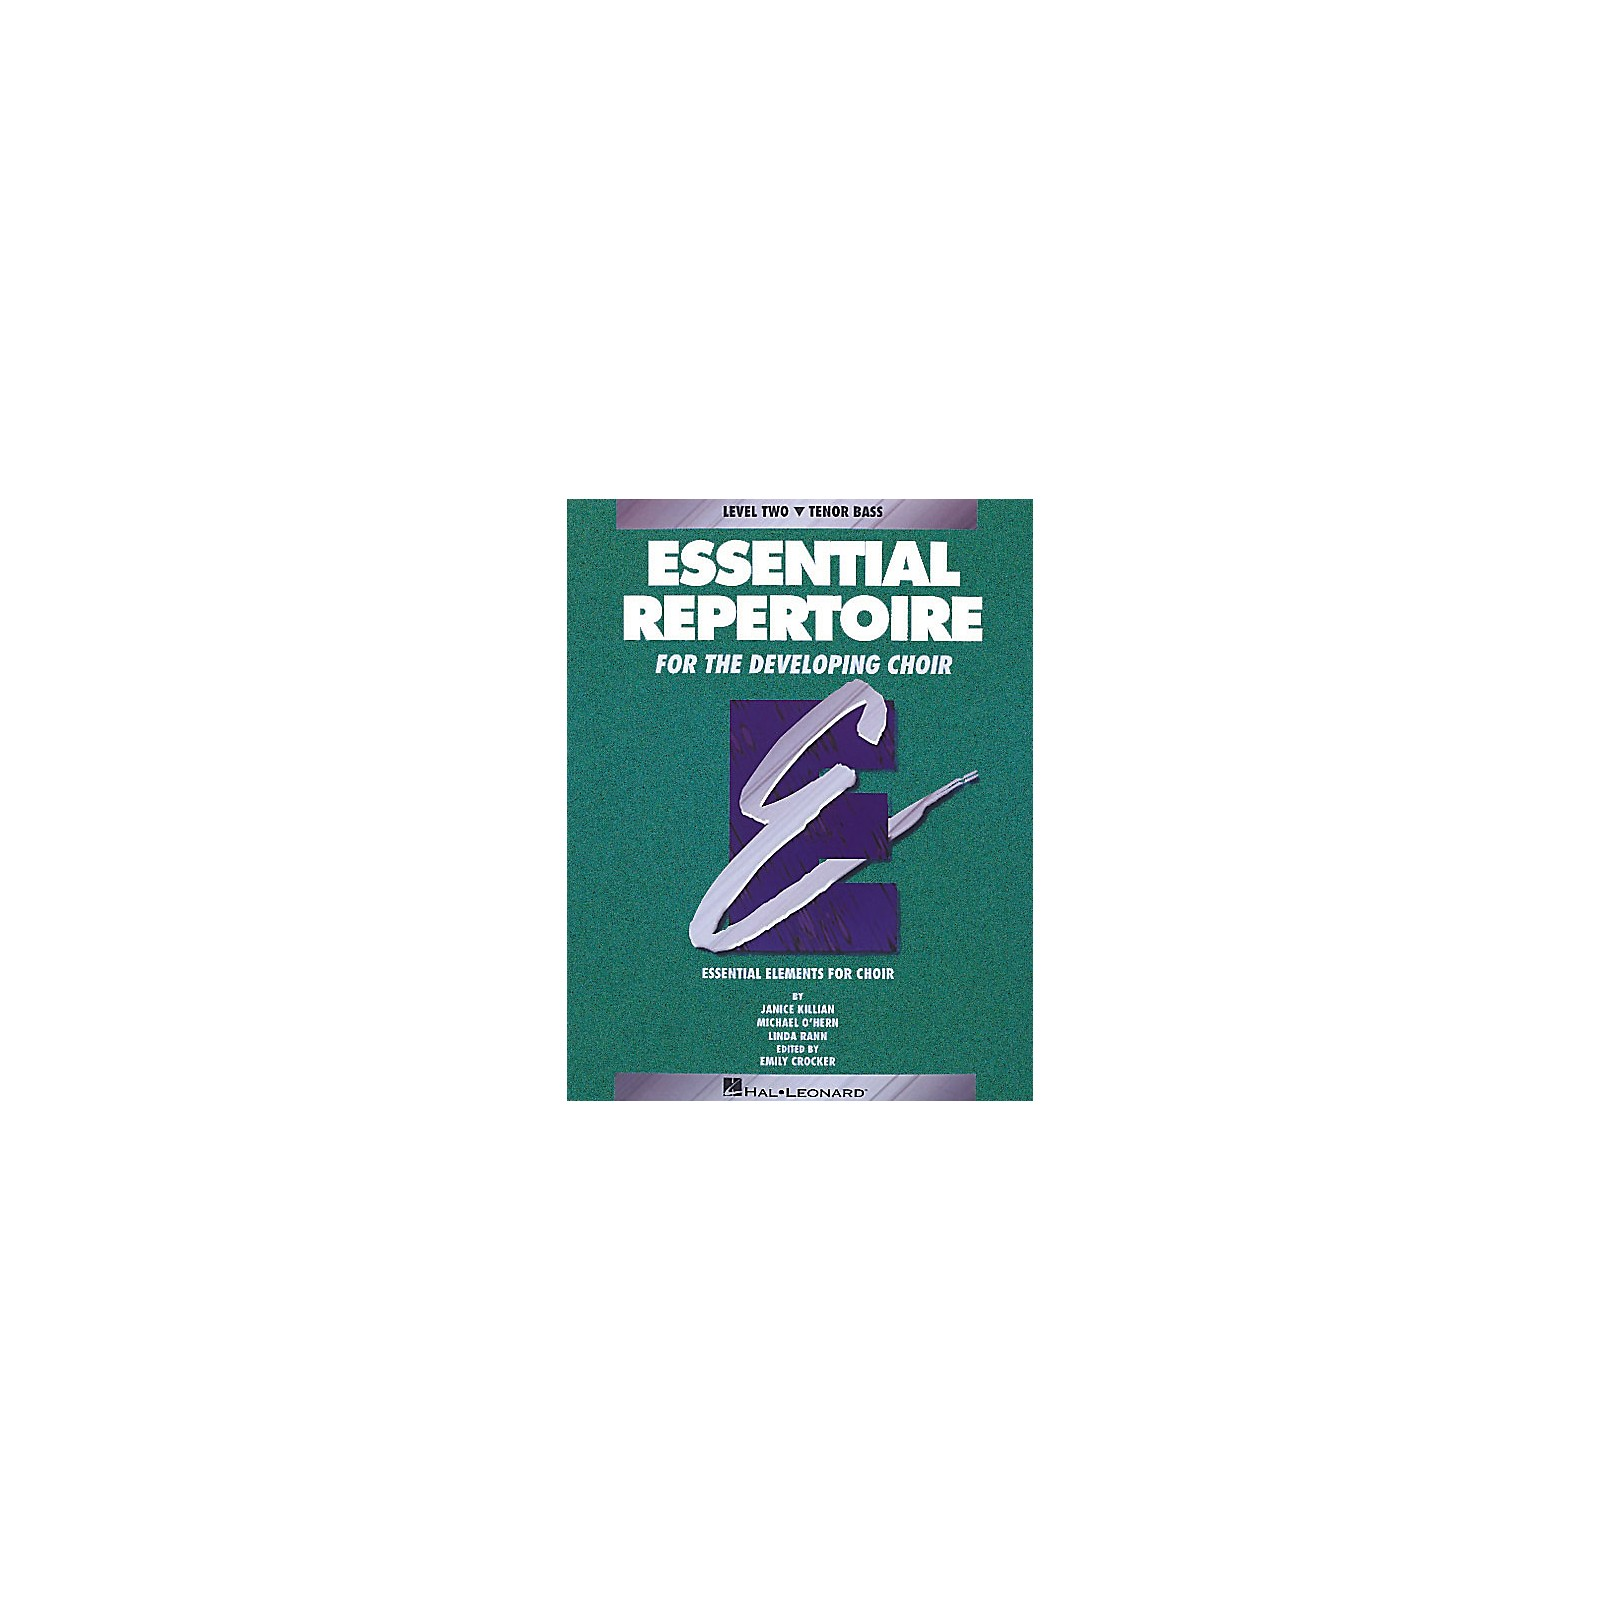 Hal Leonard Essential Repertoire for the Developing Choir Tenor Bass Part-Learning CDs 3 Composed by Janice Killian